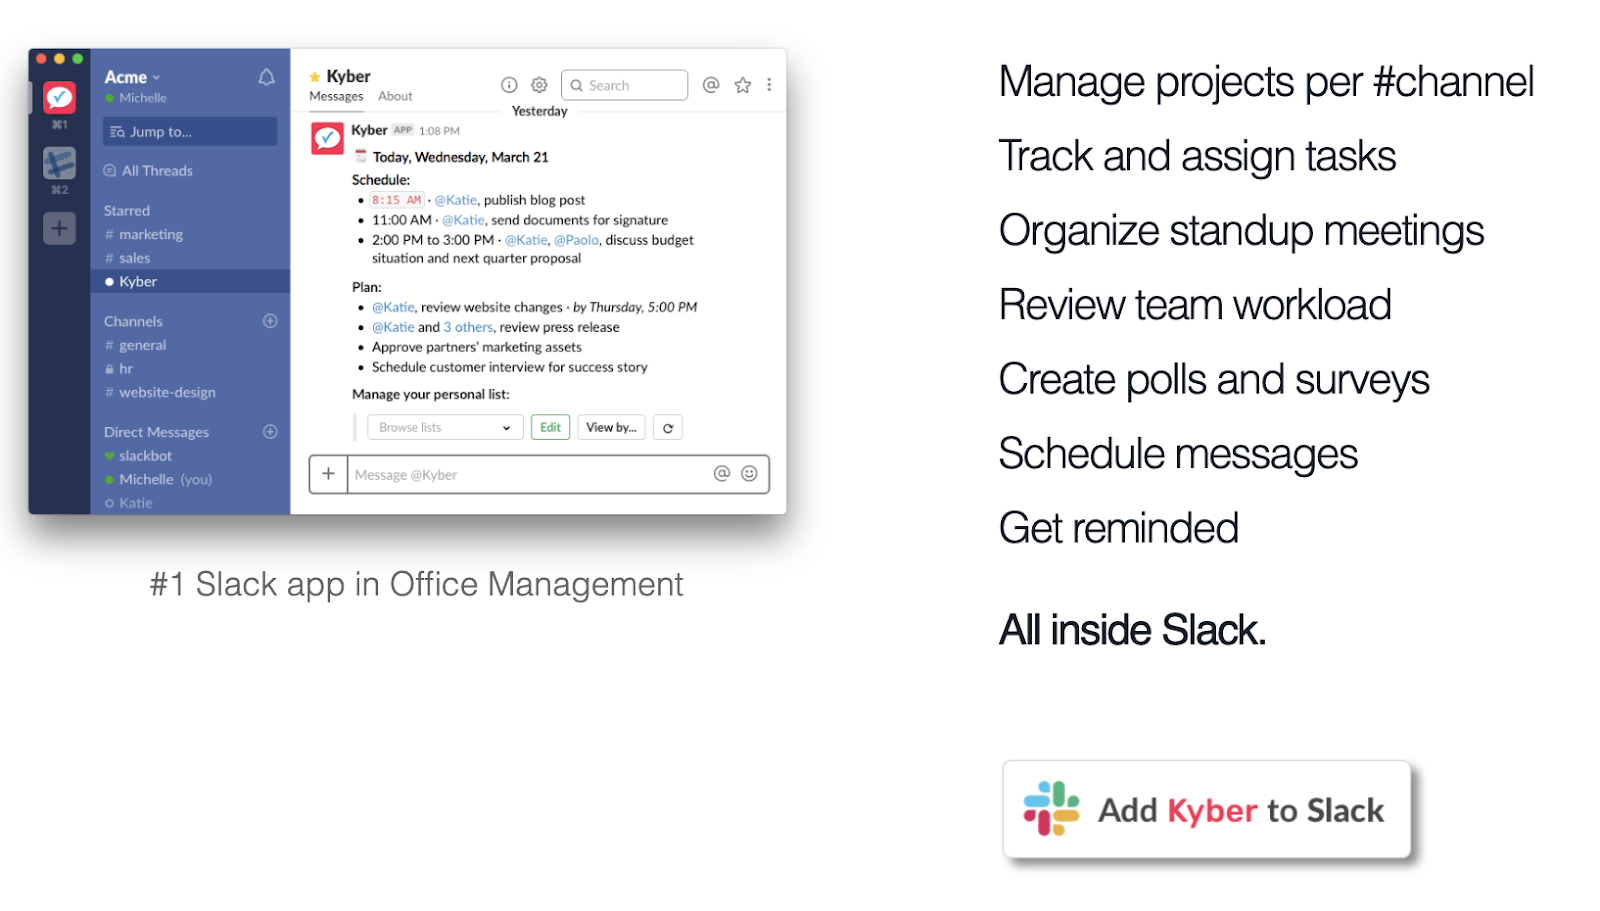 Kyber homepage: Manage projects per channel, track and assign tasks, organize standup meetings, review team workload, create polls and surveys, schedule messages, get reminded. All inside slack.